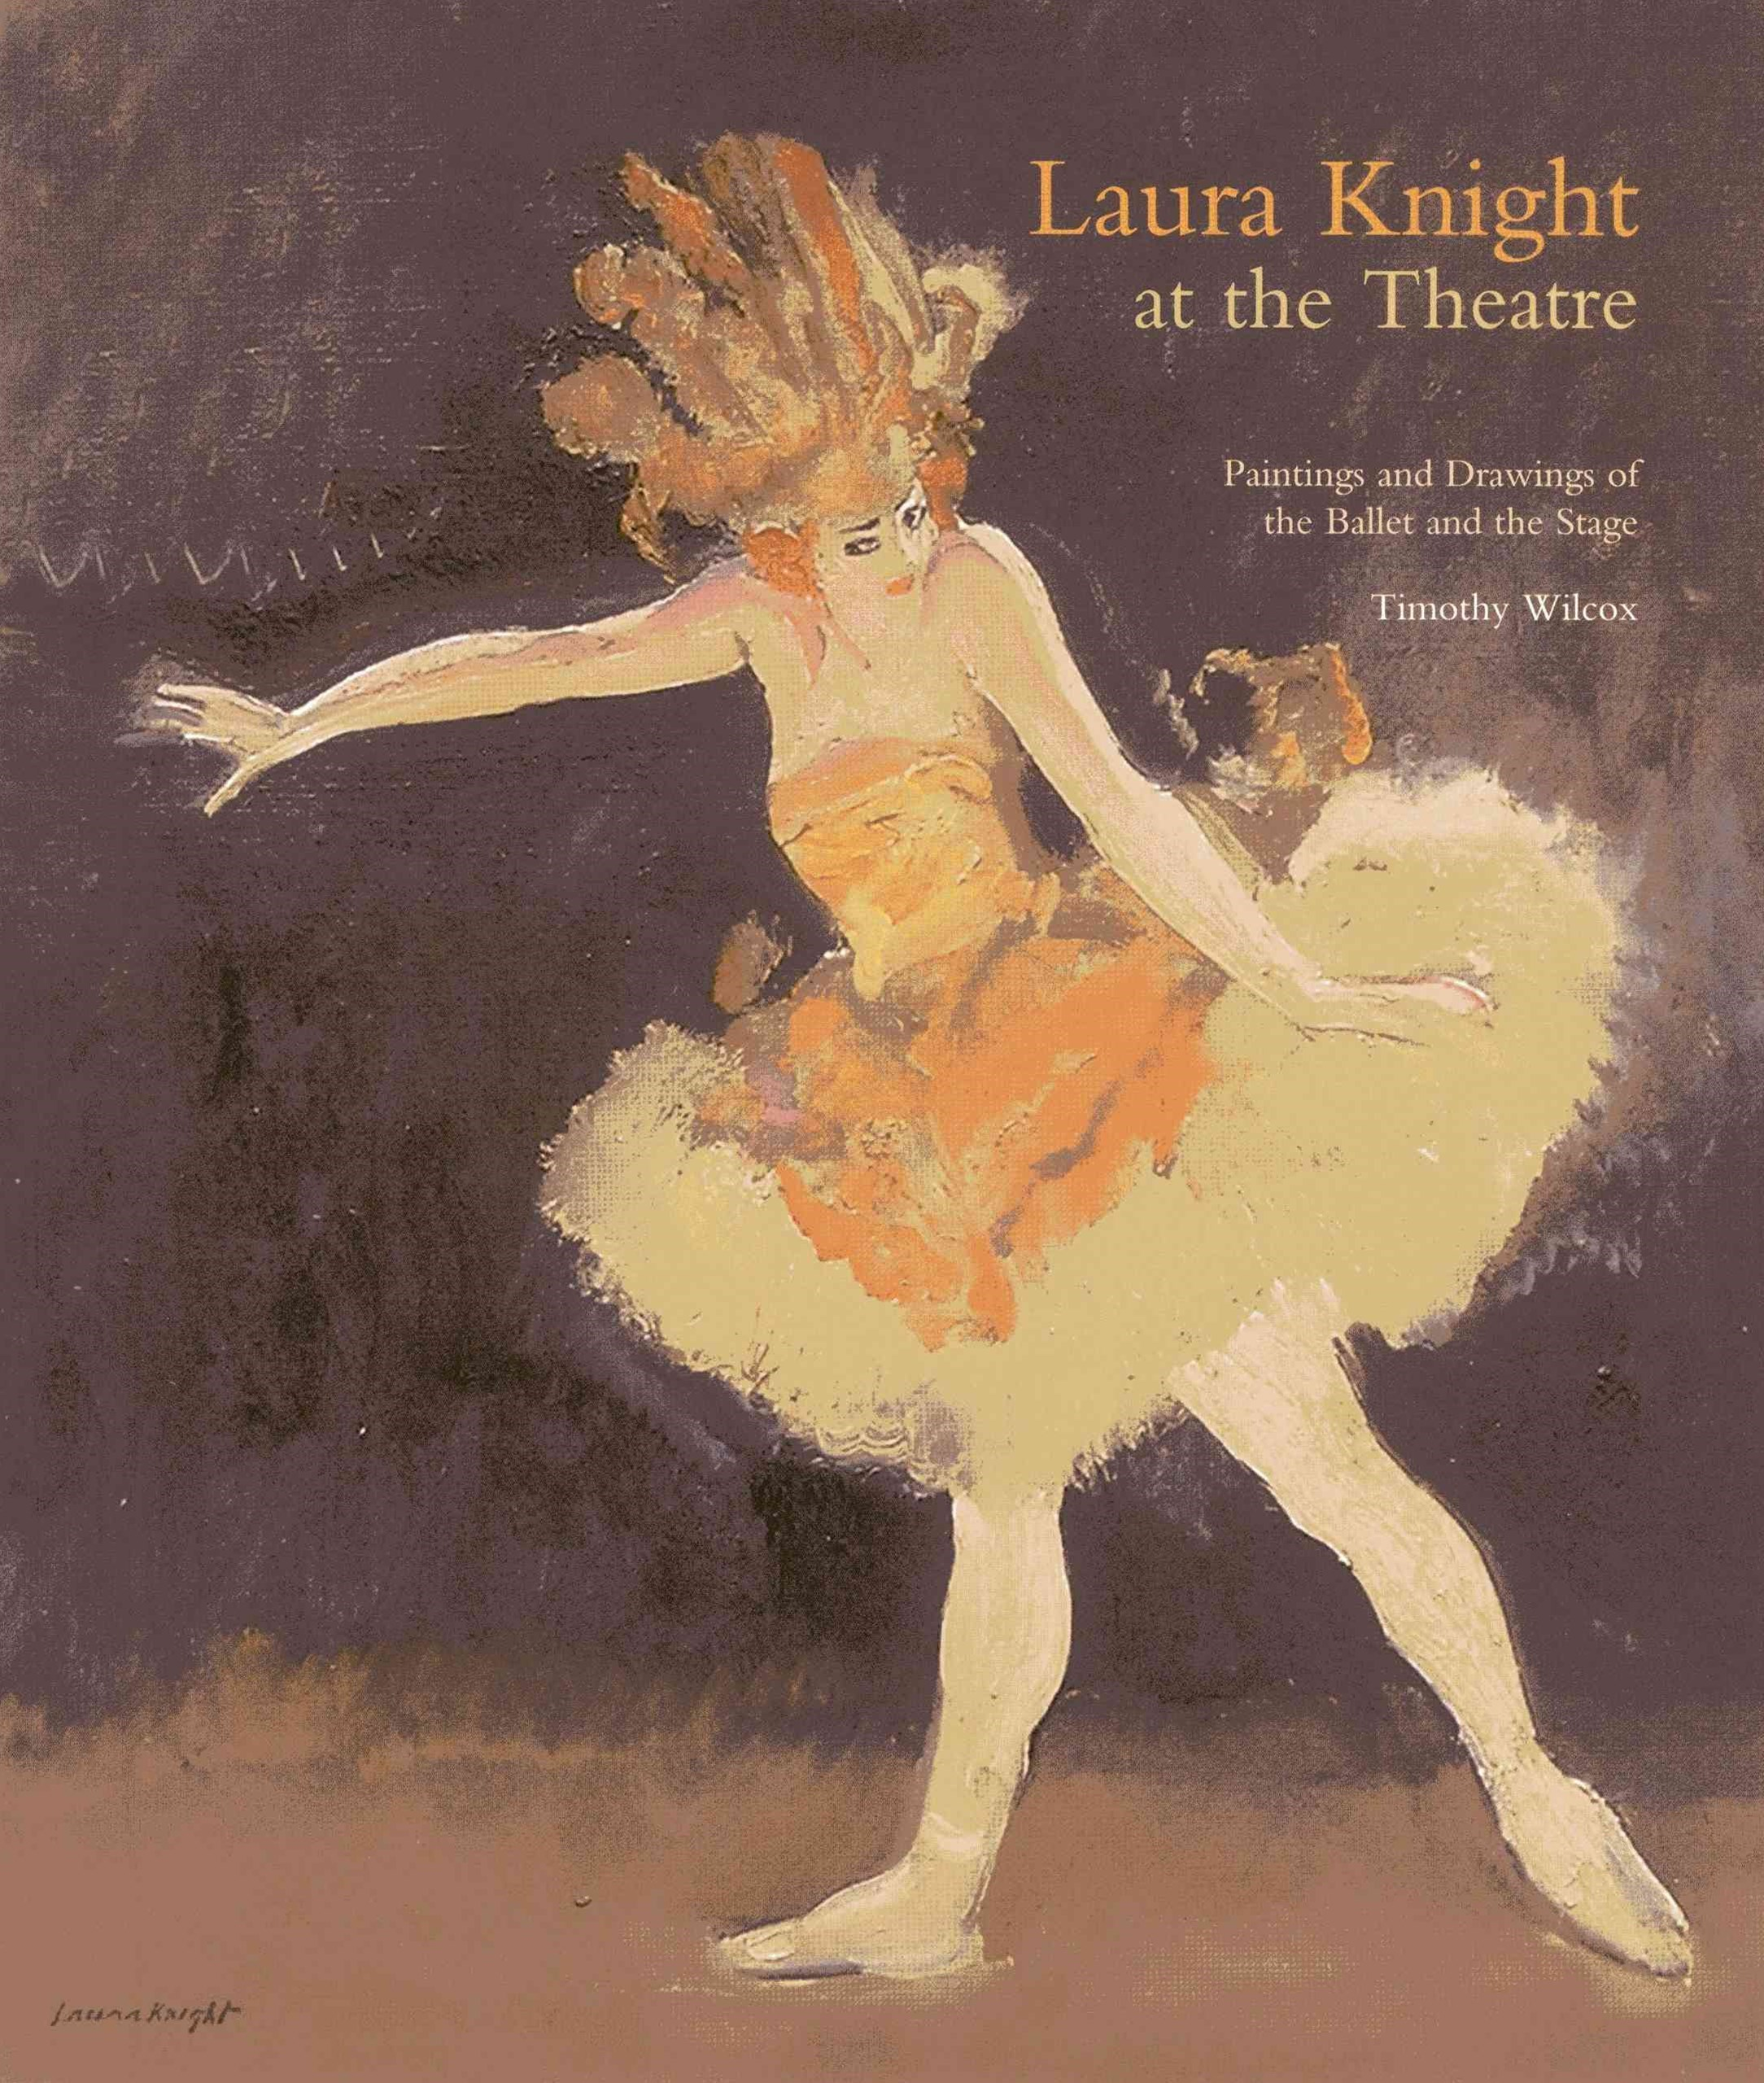 Laura Knight at the Theatre